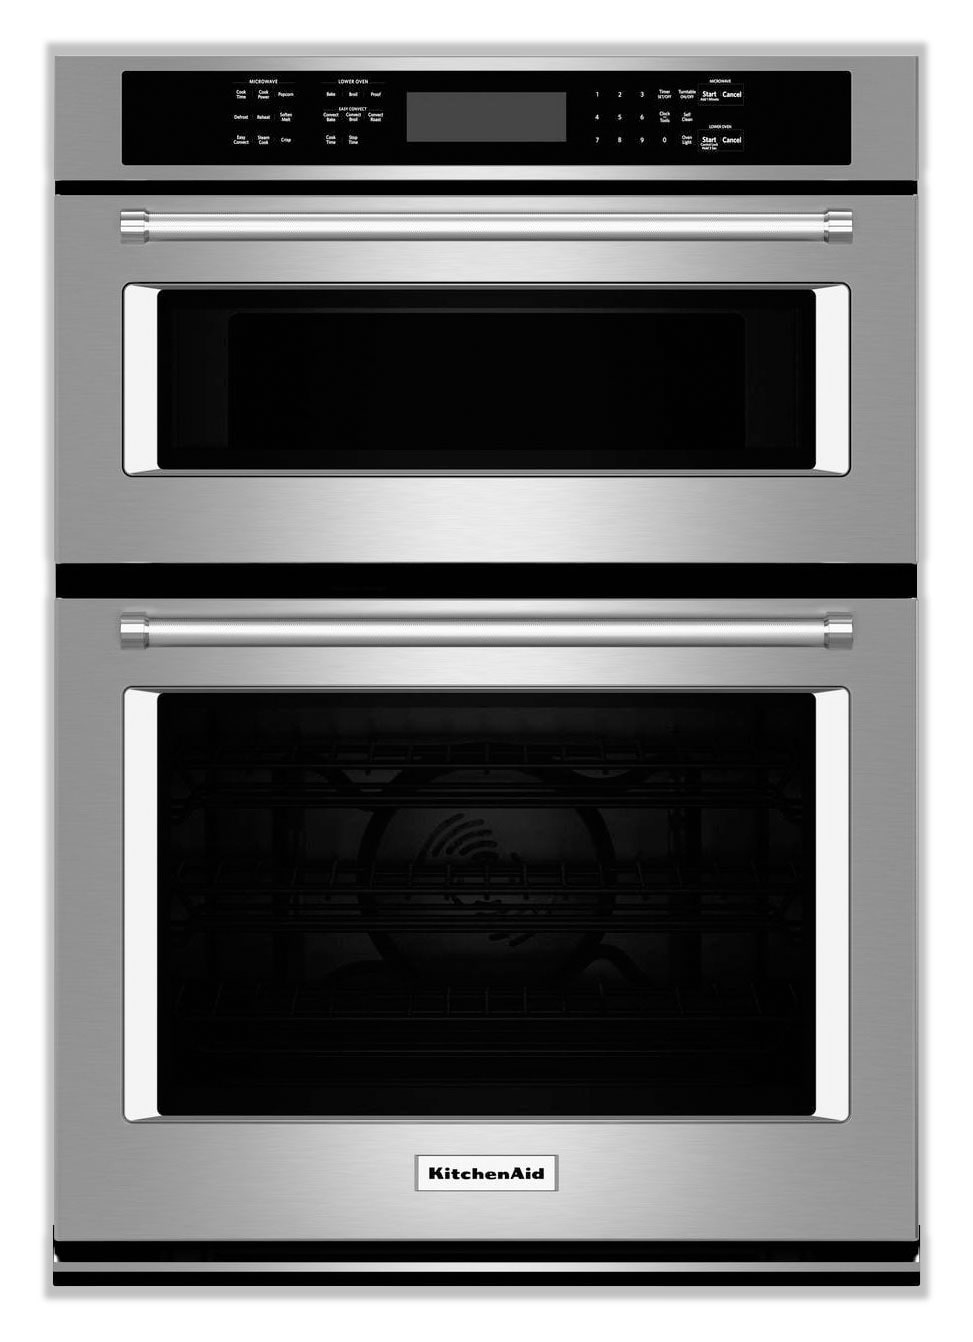 Cooking Products - KitchenAid Stainless Steel Wall Oven (4.3 Cu. Ft.) w/ Microwave (1.4 Cu. Ft.) - KOCE507ESS